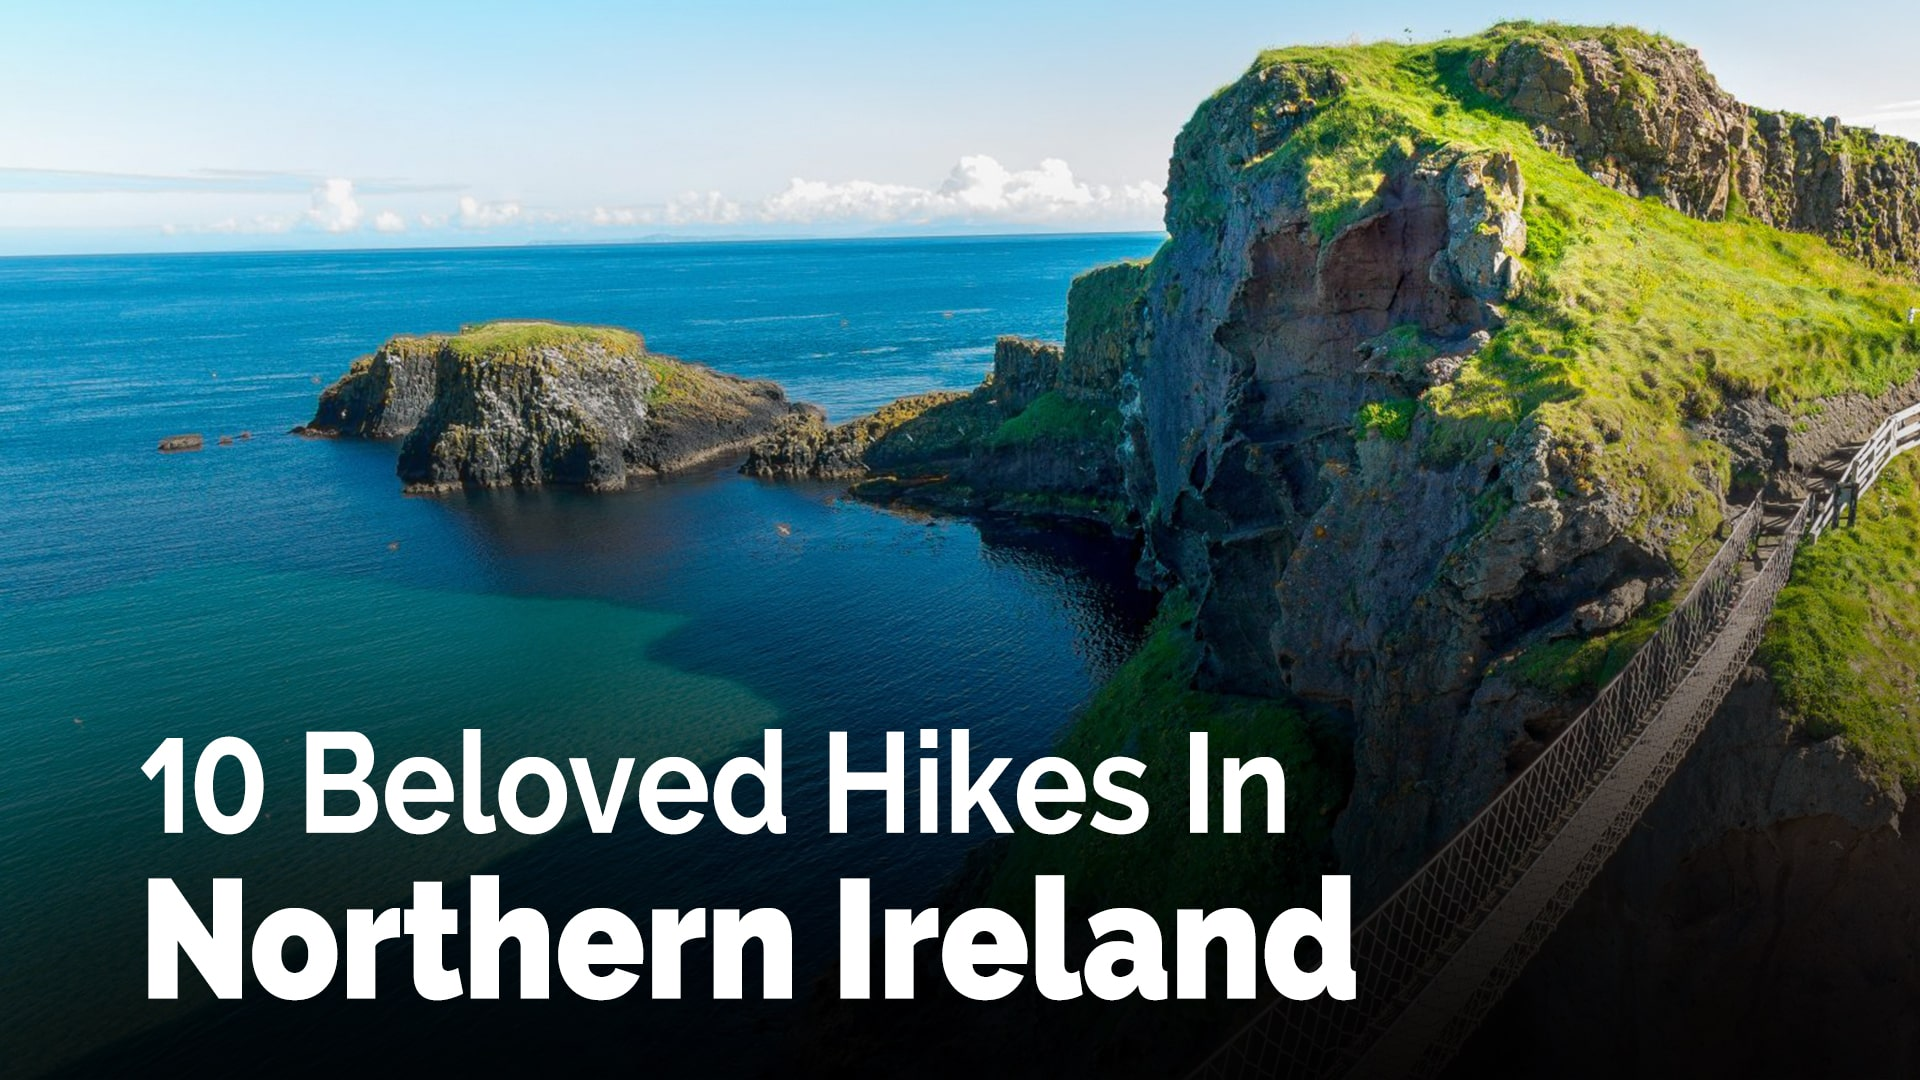 10 Beloved Hikes In Northern Ireland